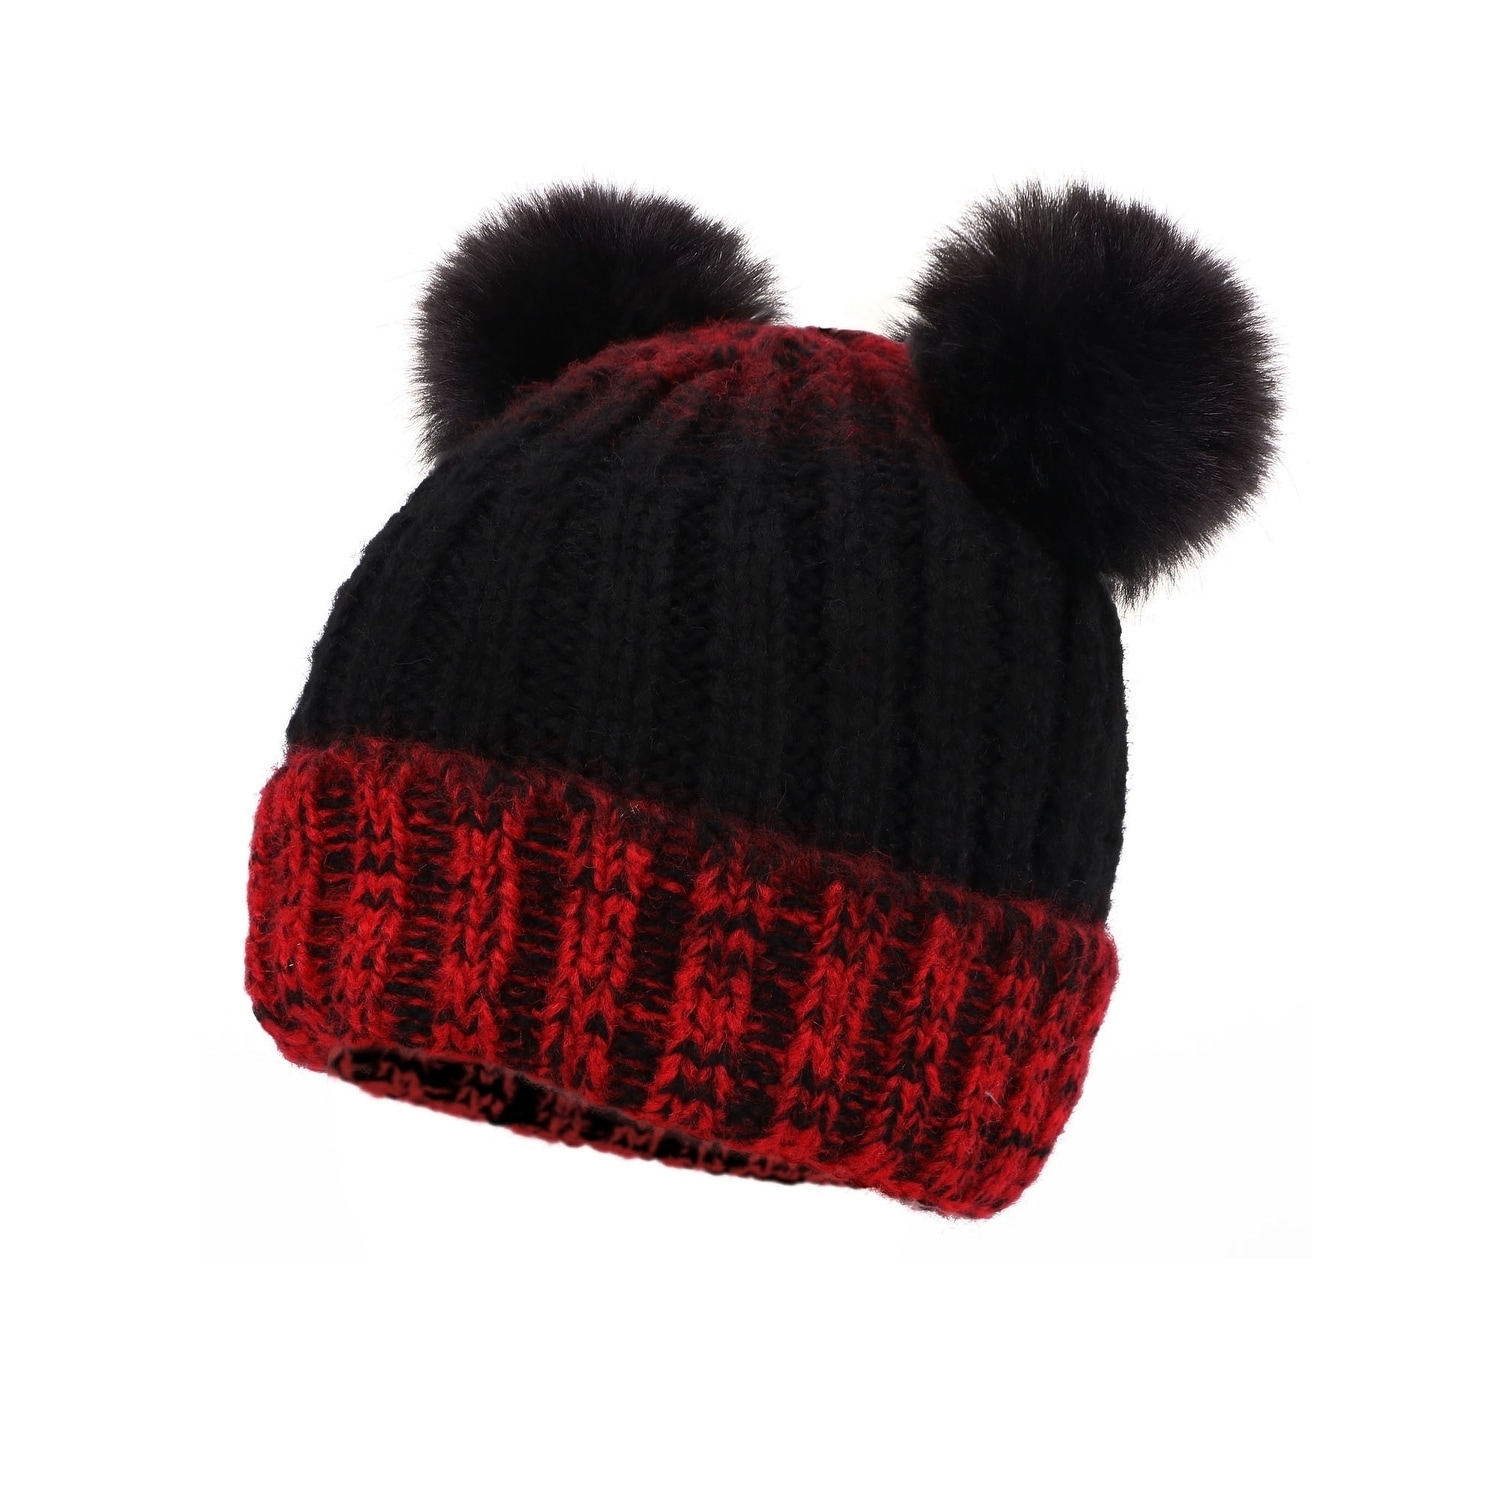 40aae0efd02c85 Shop Children's Cable Knit Ombre Beanie Pompom Ears - Free Shipping ...